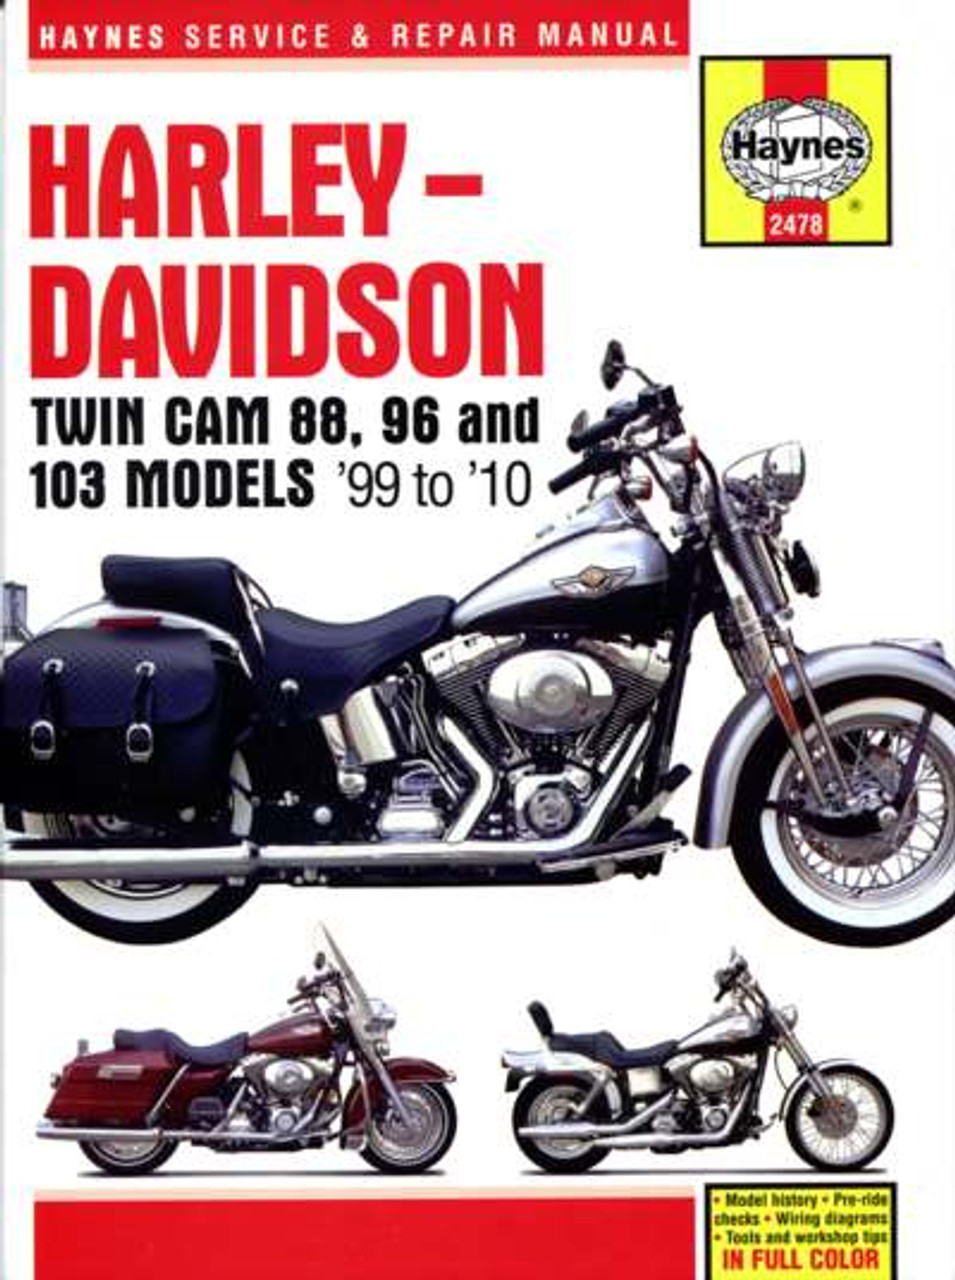 small resolution of harley heritage wiring diagram for 99